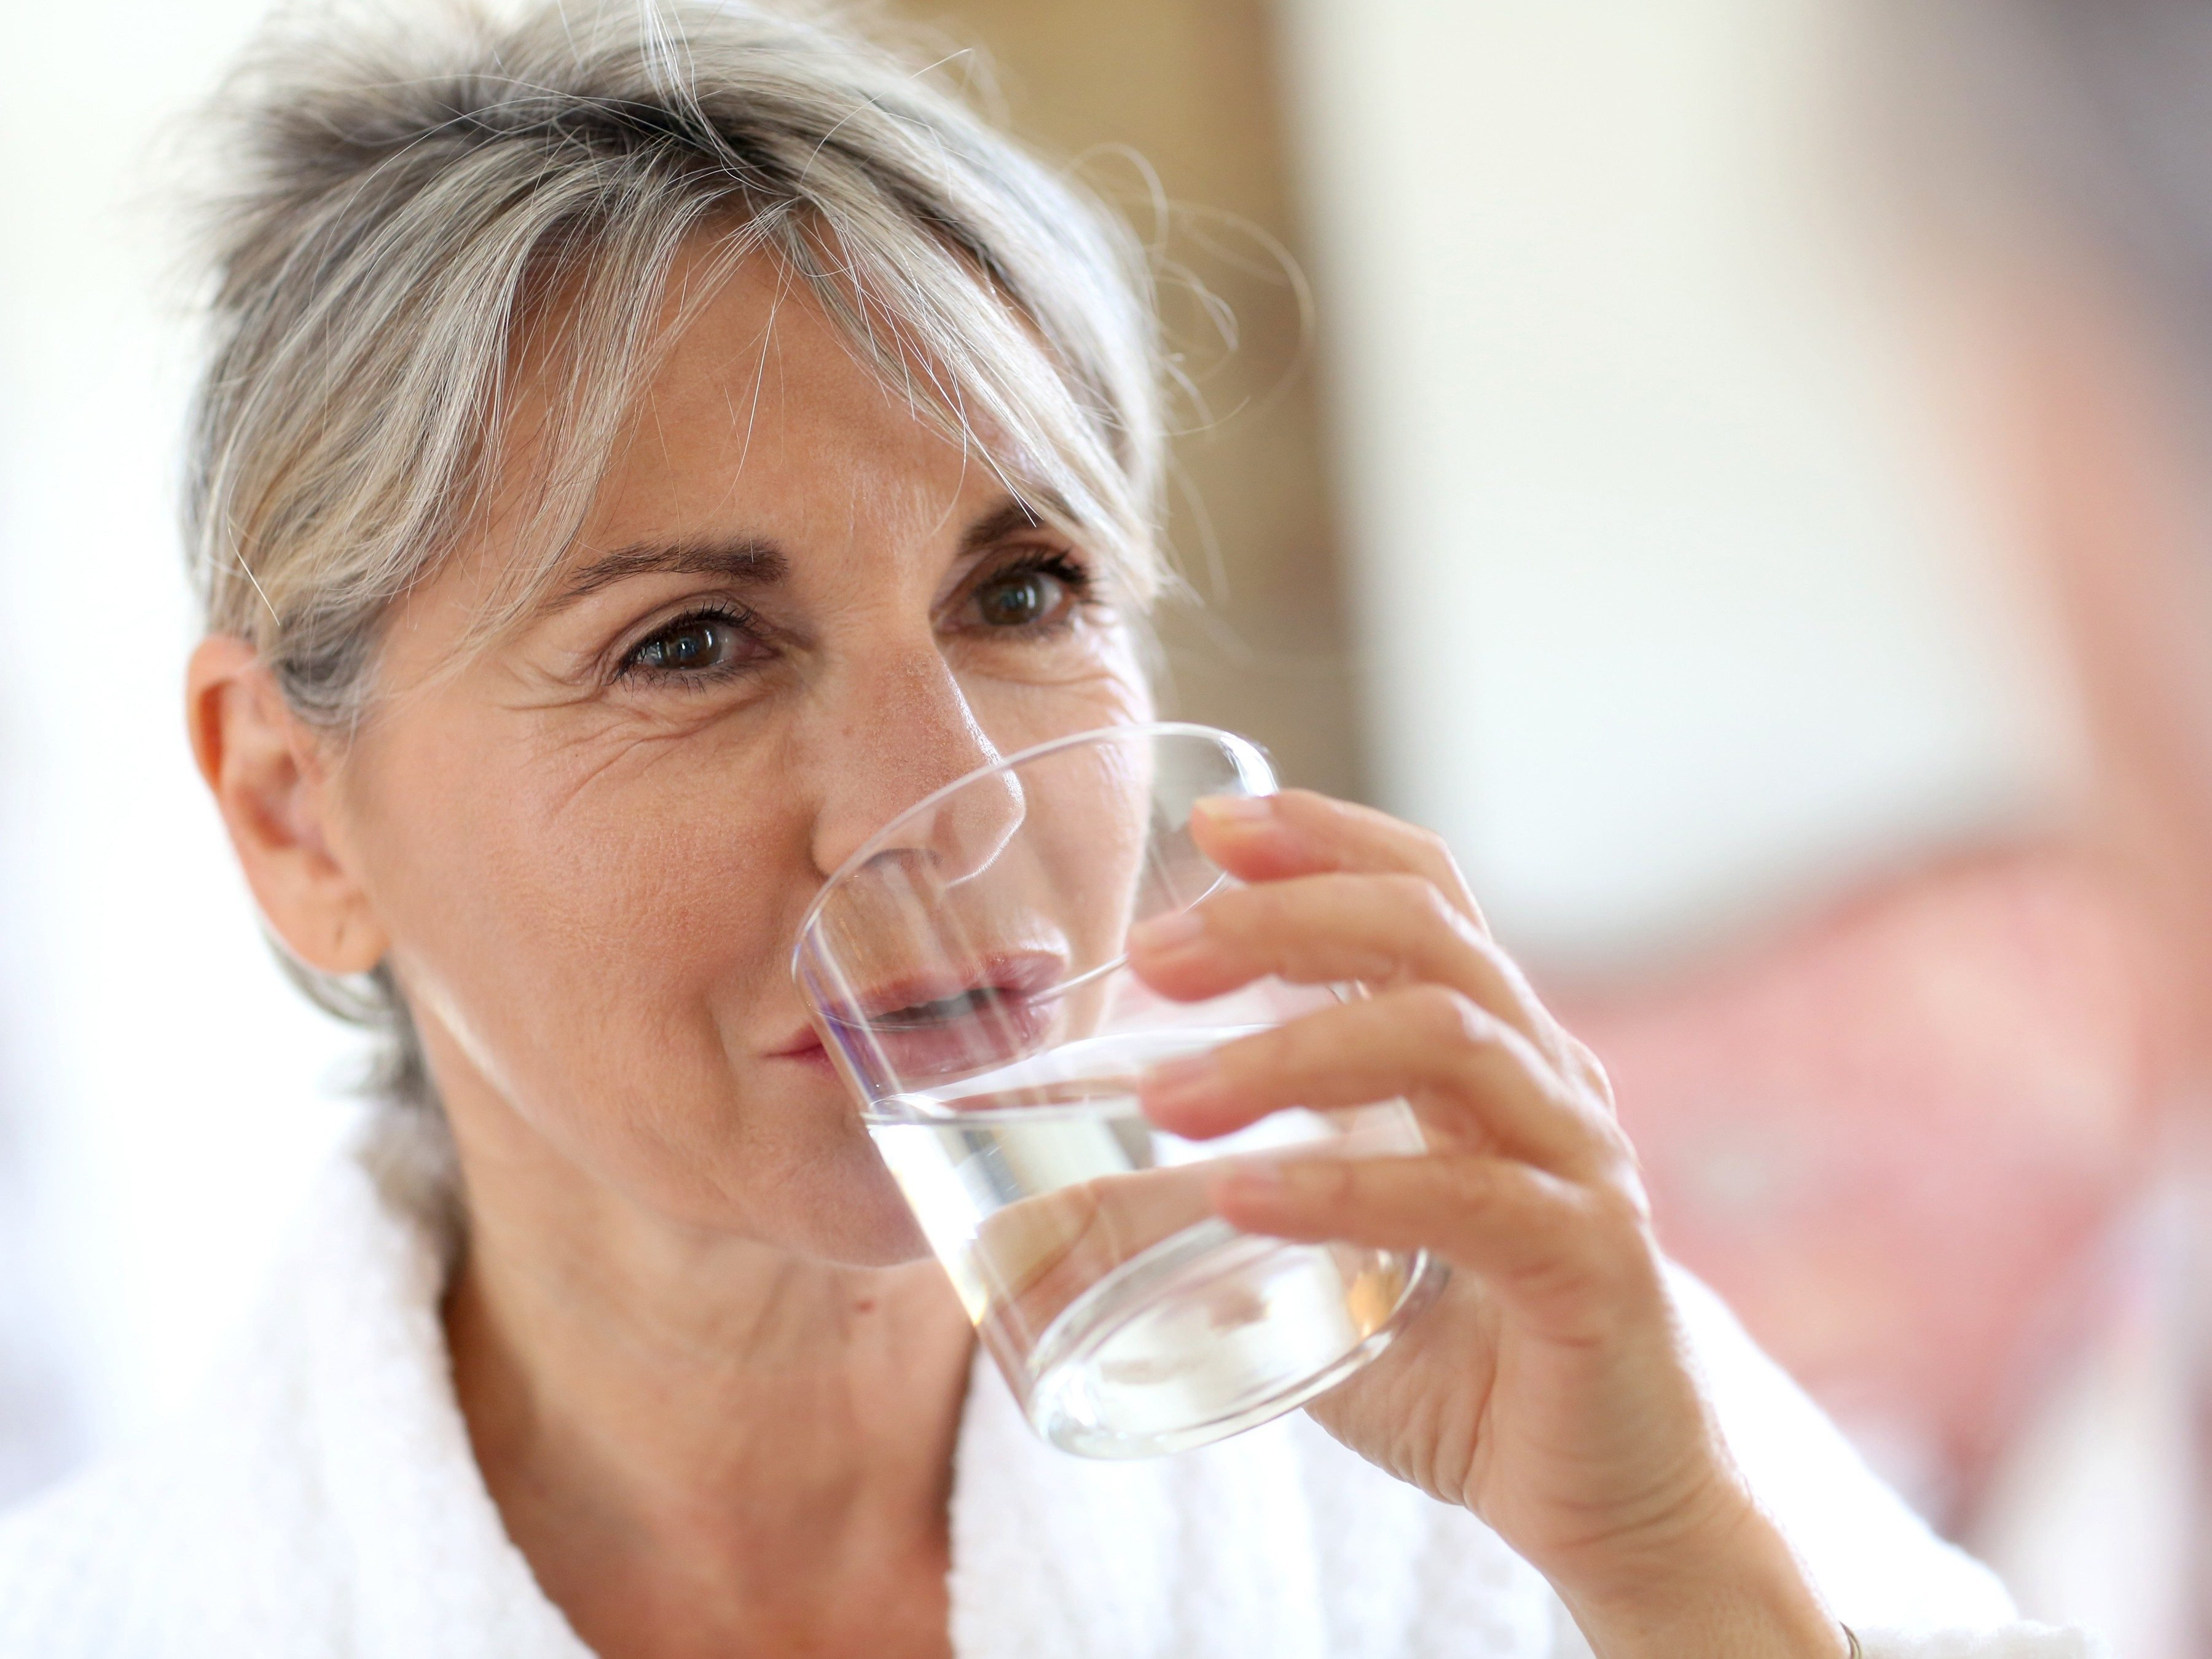 20. Drink an 8-ounce glass of water every two hours.